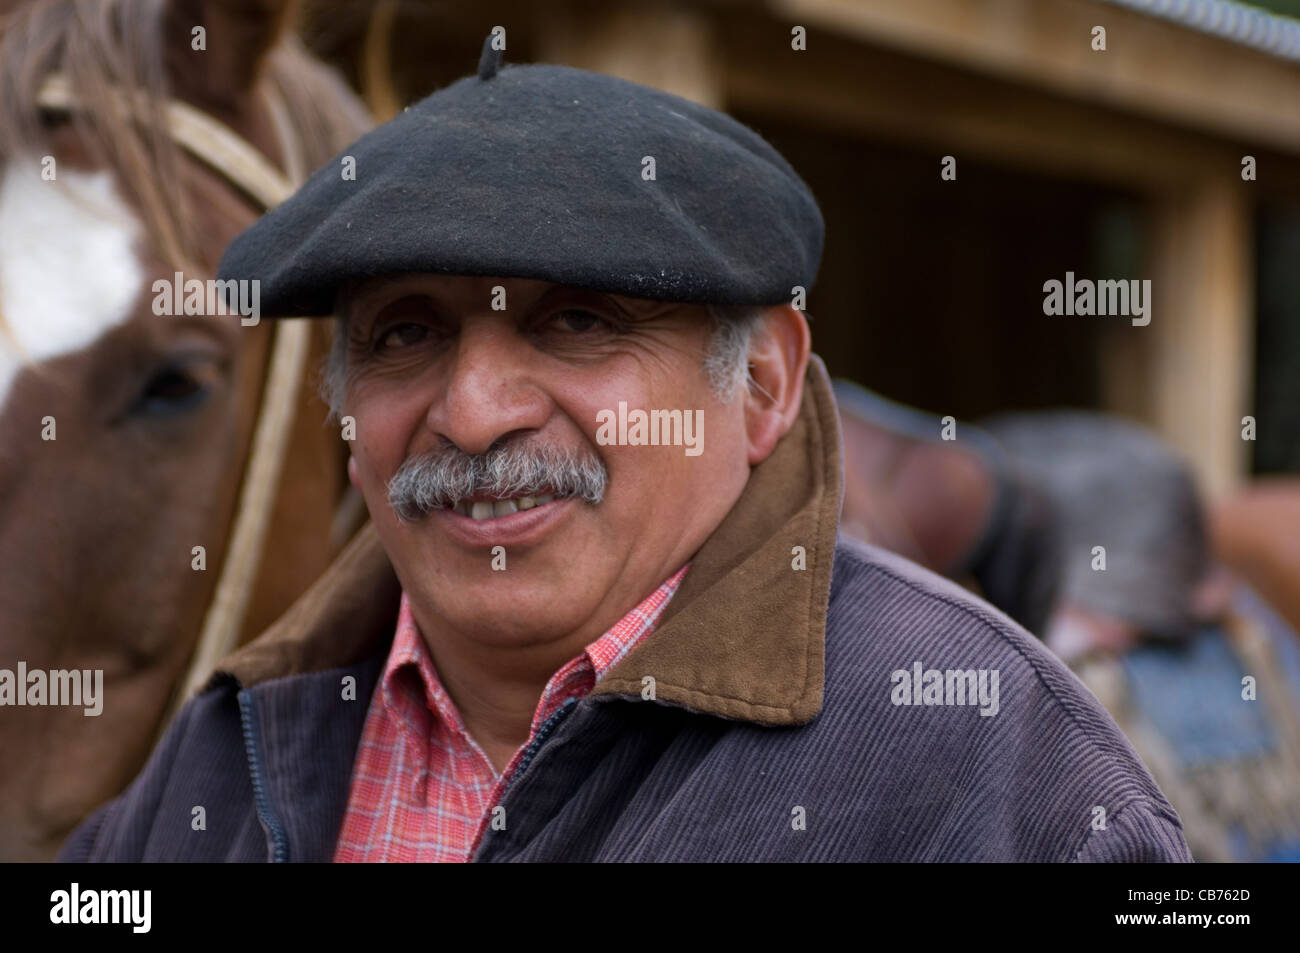 A gaucho, one of the traditional cowboys of Chile's Patagonia, with the customary mustache and traditional beret. - Stock Image